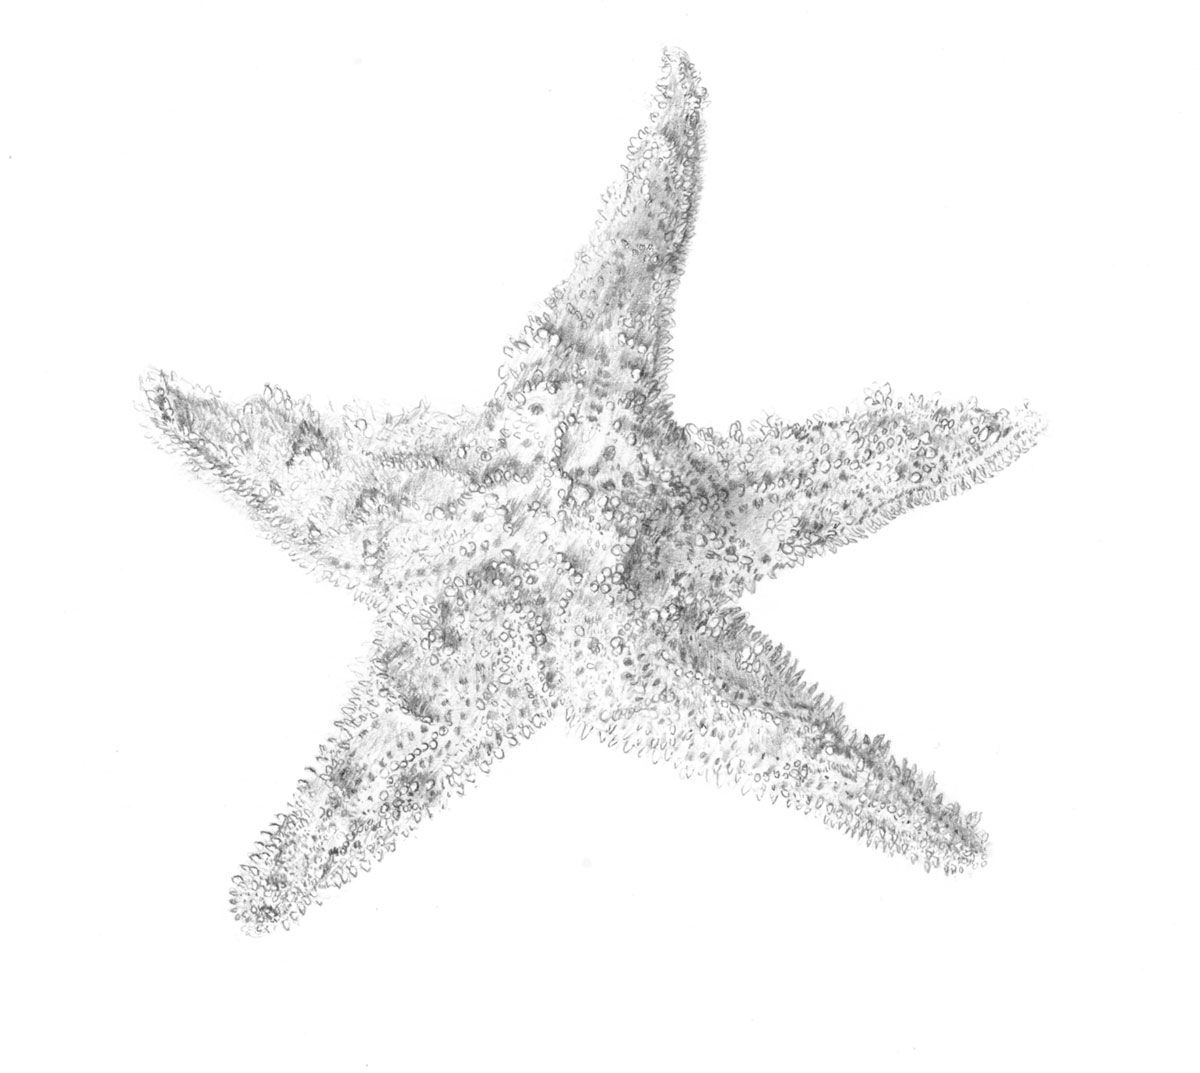 Uncategorized Star Fish Drawing how to draw starfish 2007 graphite on paper crafts paper